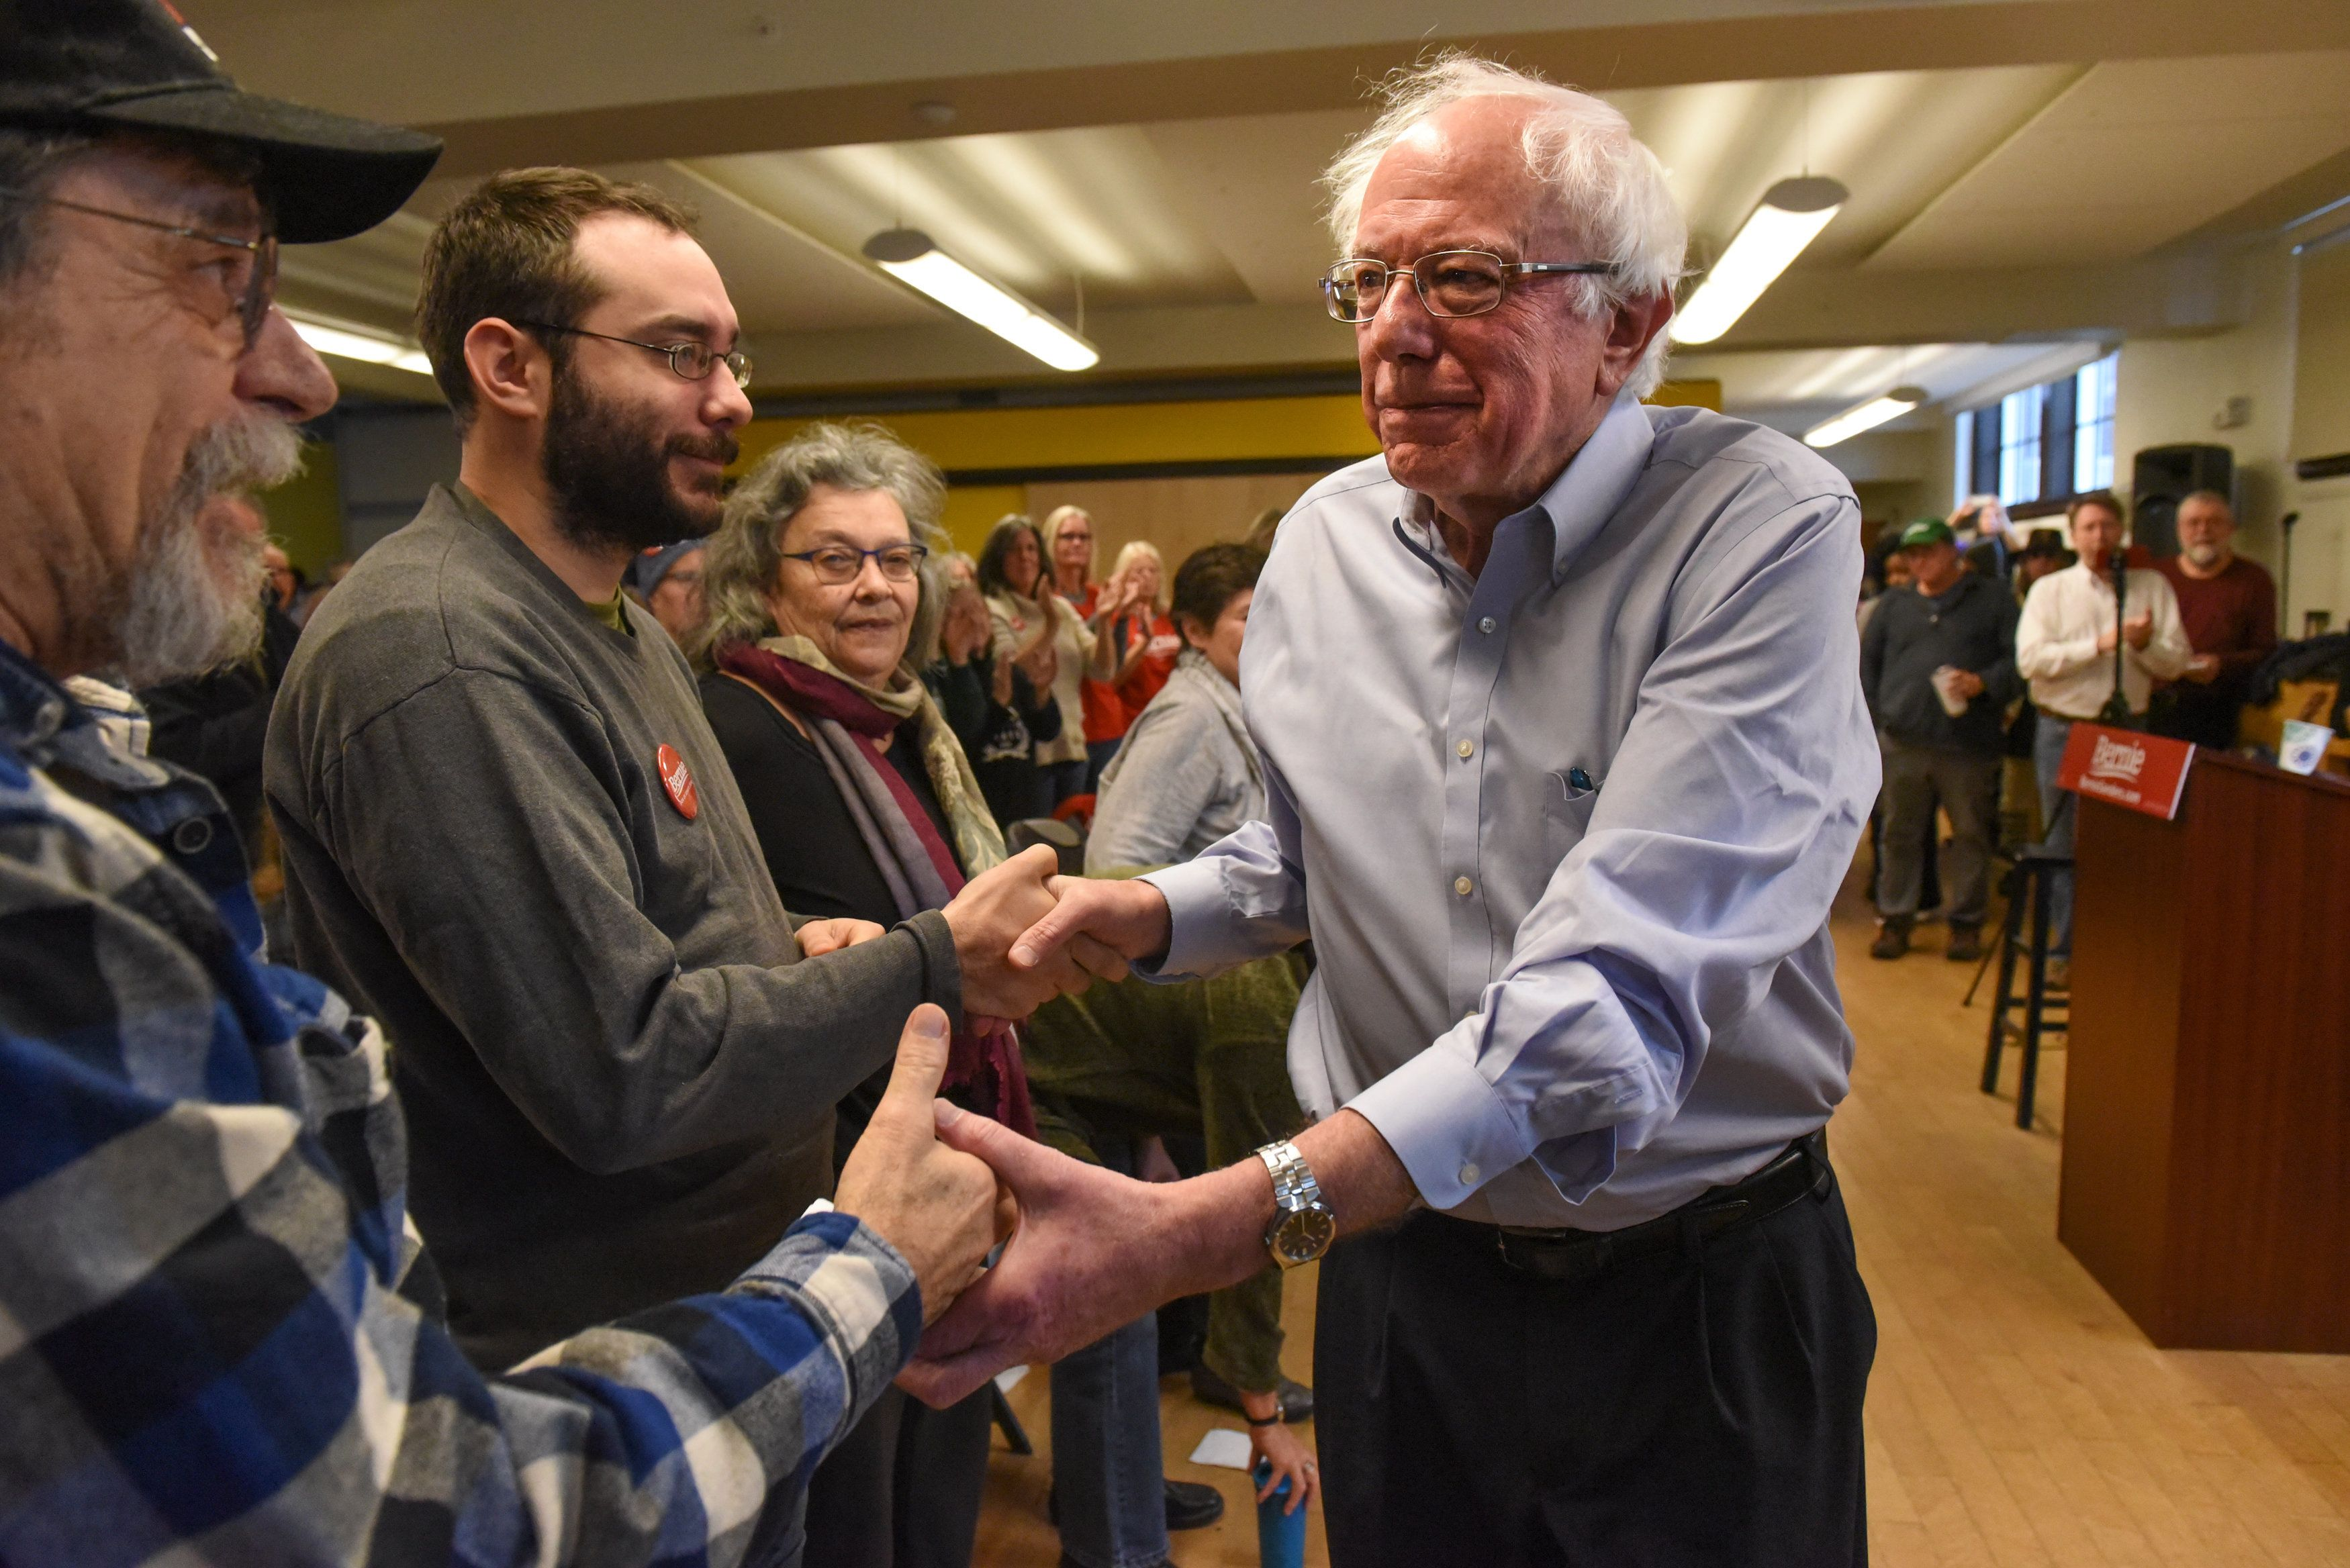 Bernie Sanders Becomes The 1 Millionth Presidential Candidate for 2020